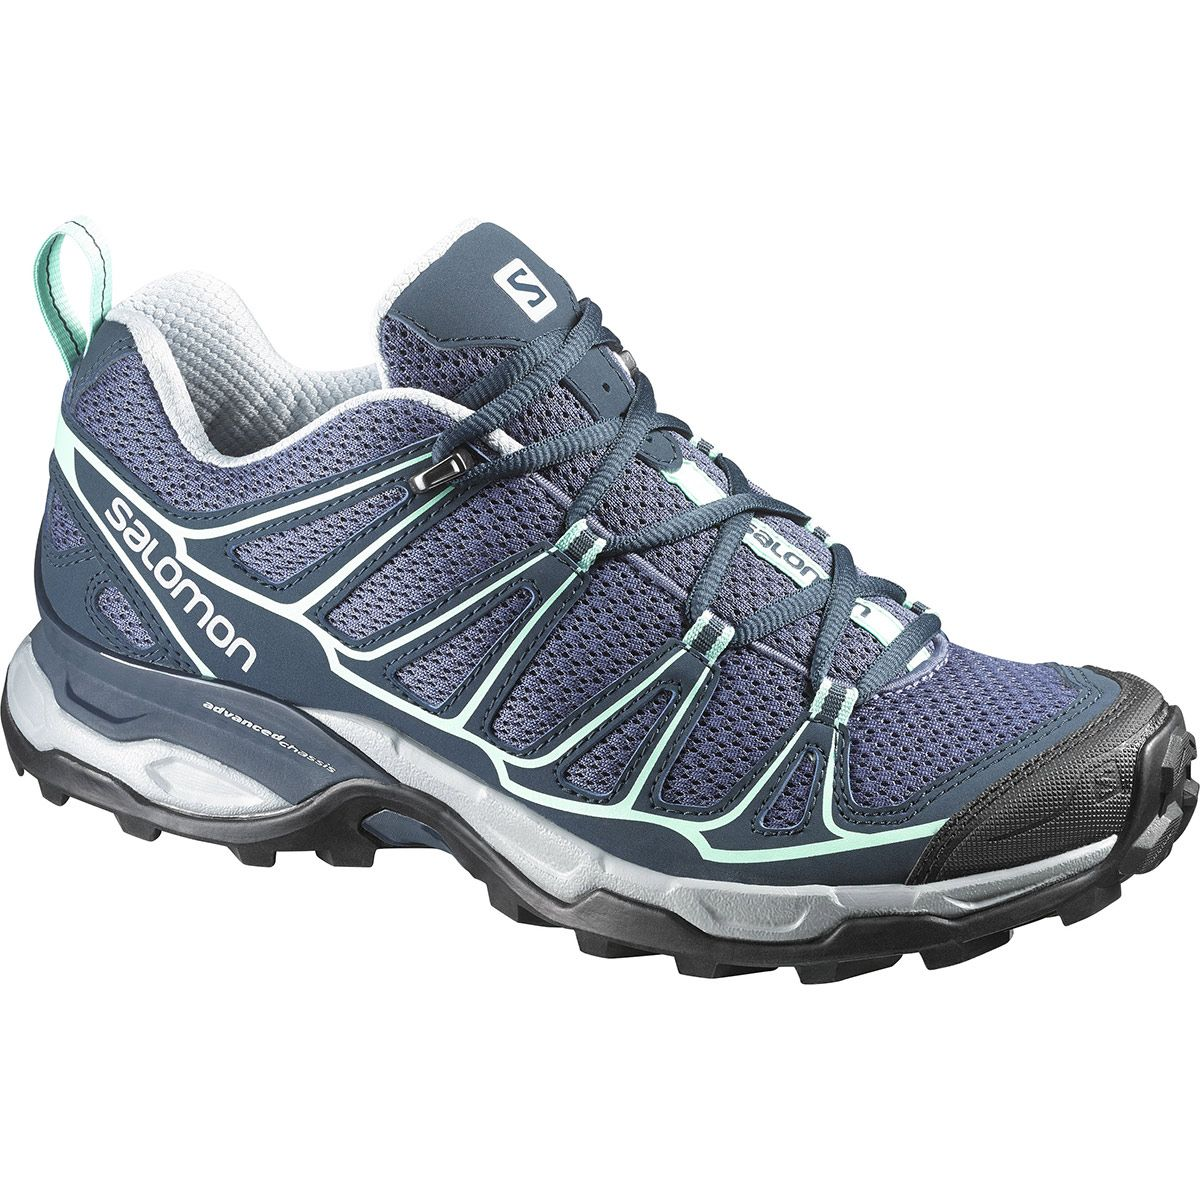 SALOMON Women's X Ultra Prime Hiking Shoes Shop Now for